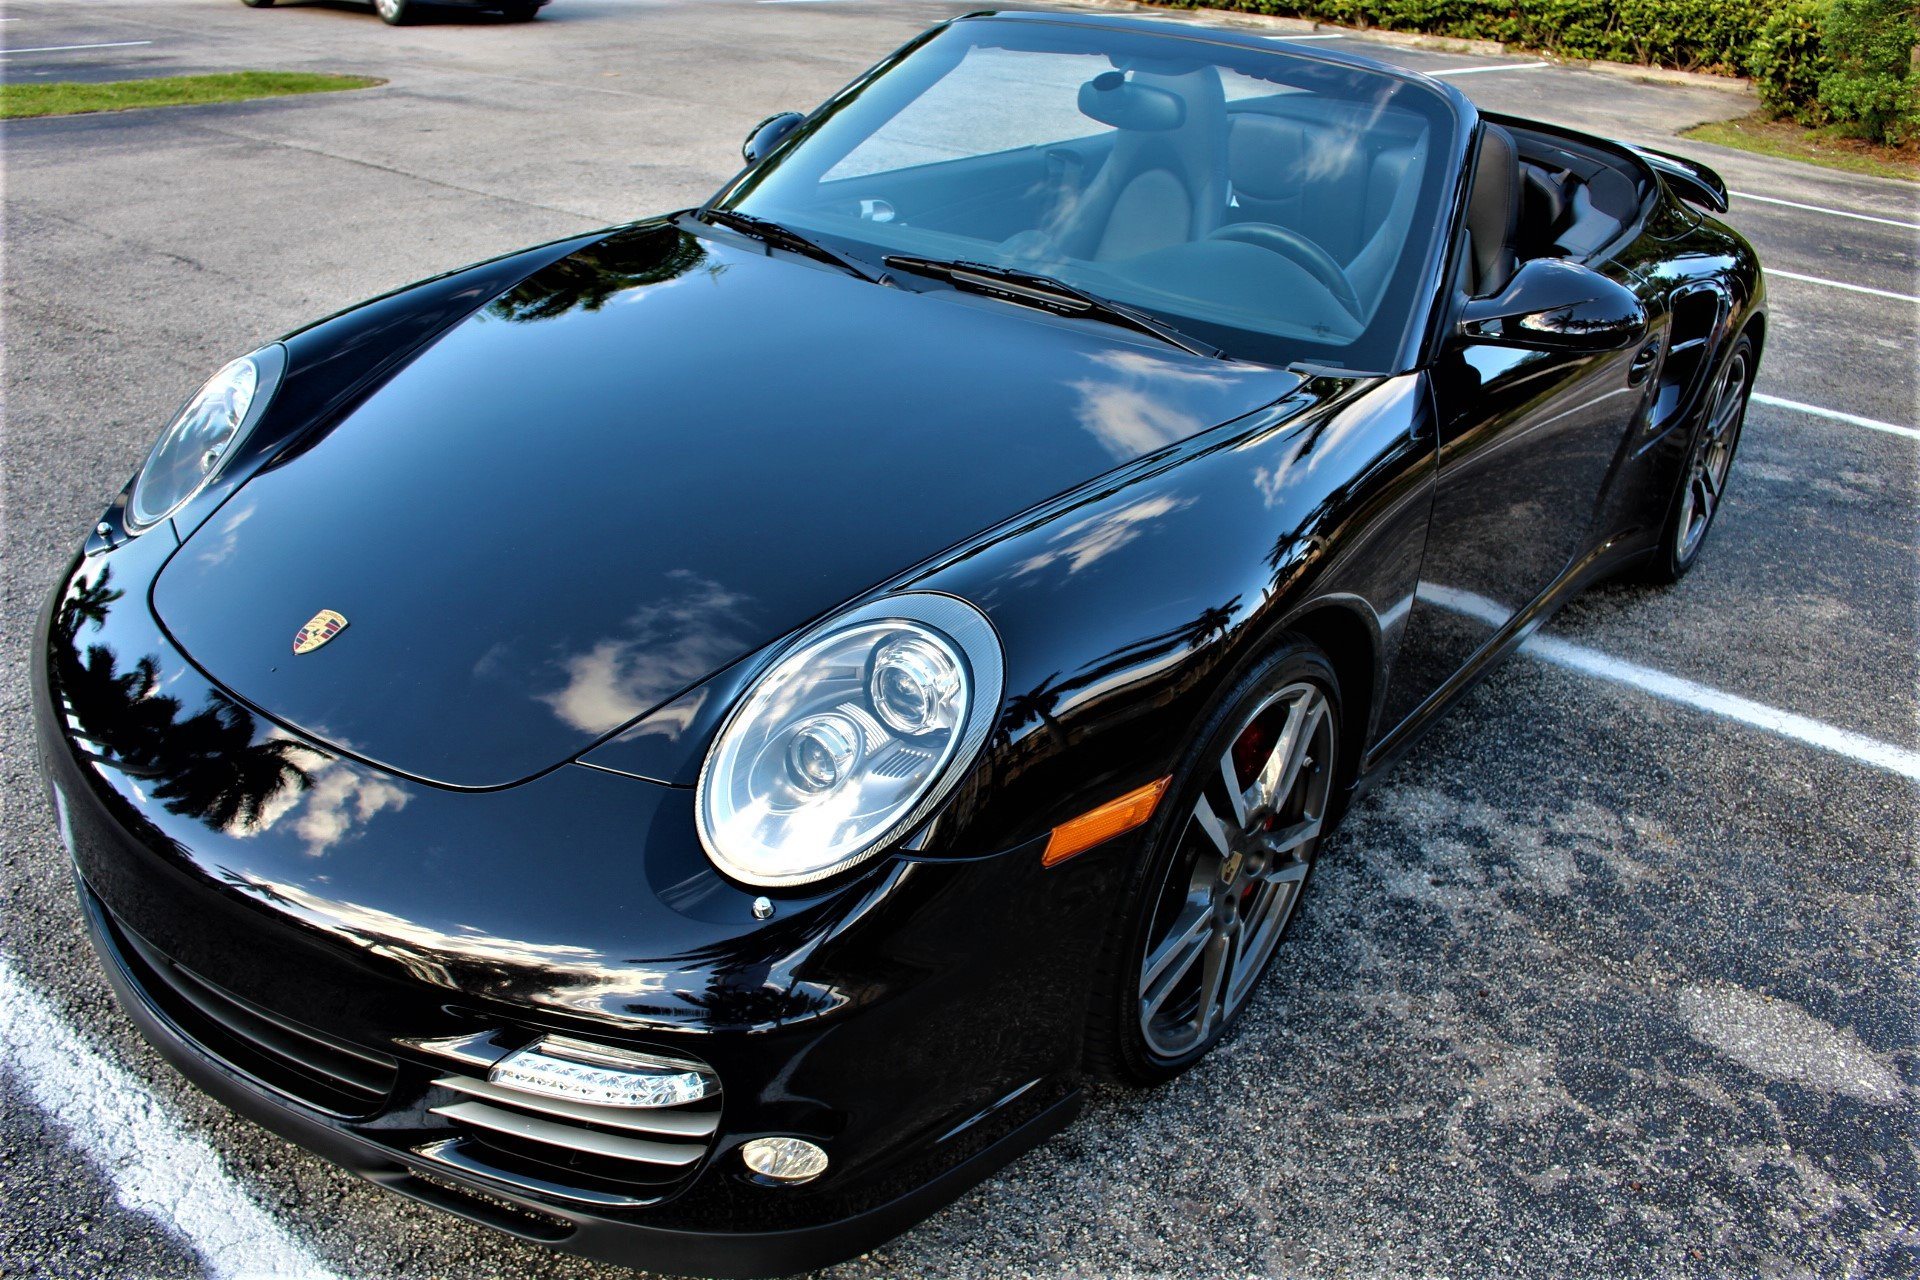 Used 2010 Porsche 911 Turbo for sale Sold at The Gables Sports Cars in Miami FL 33146 3